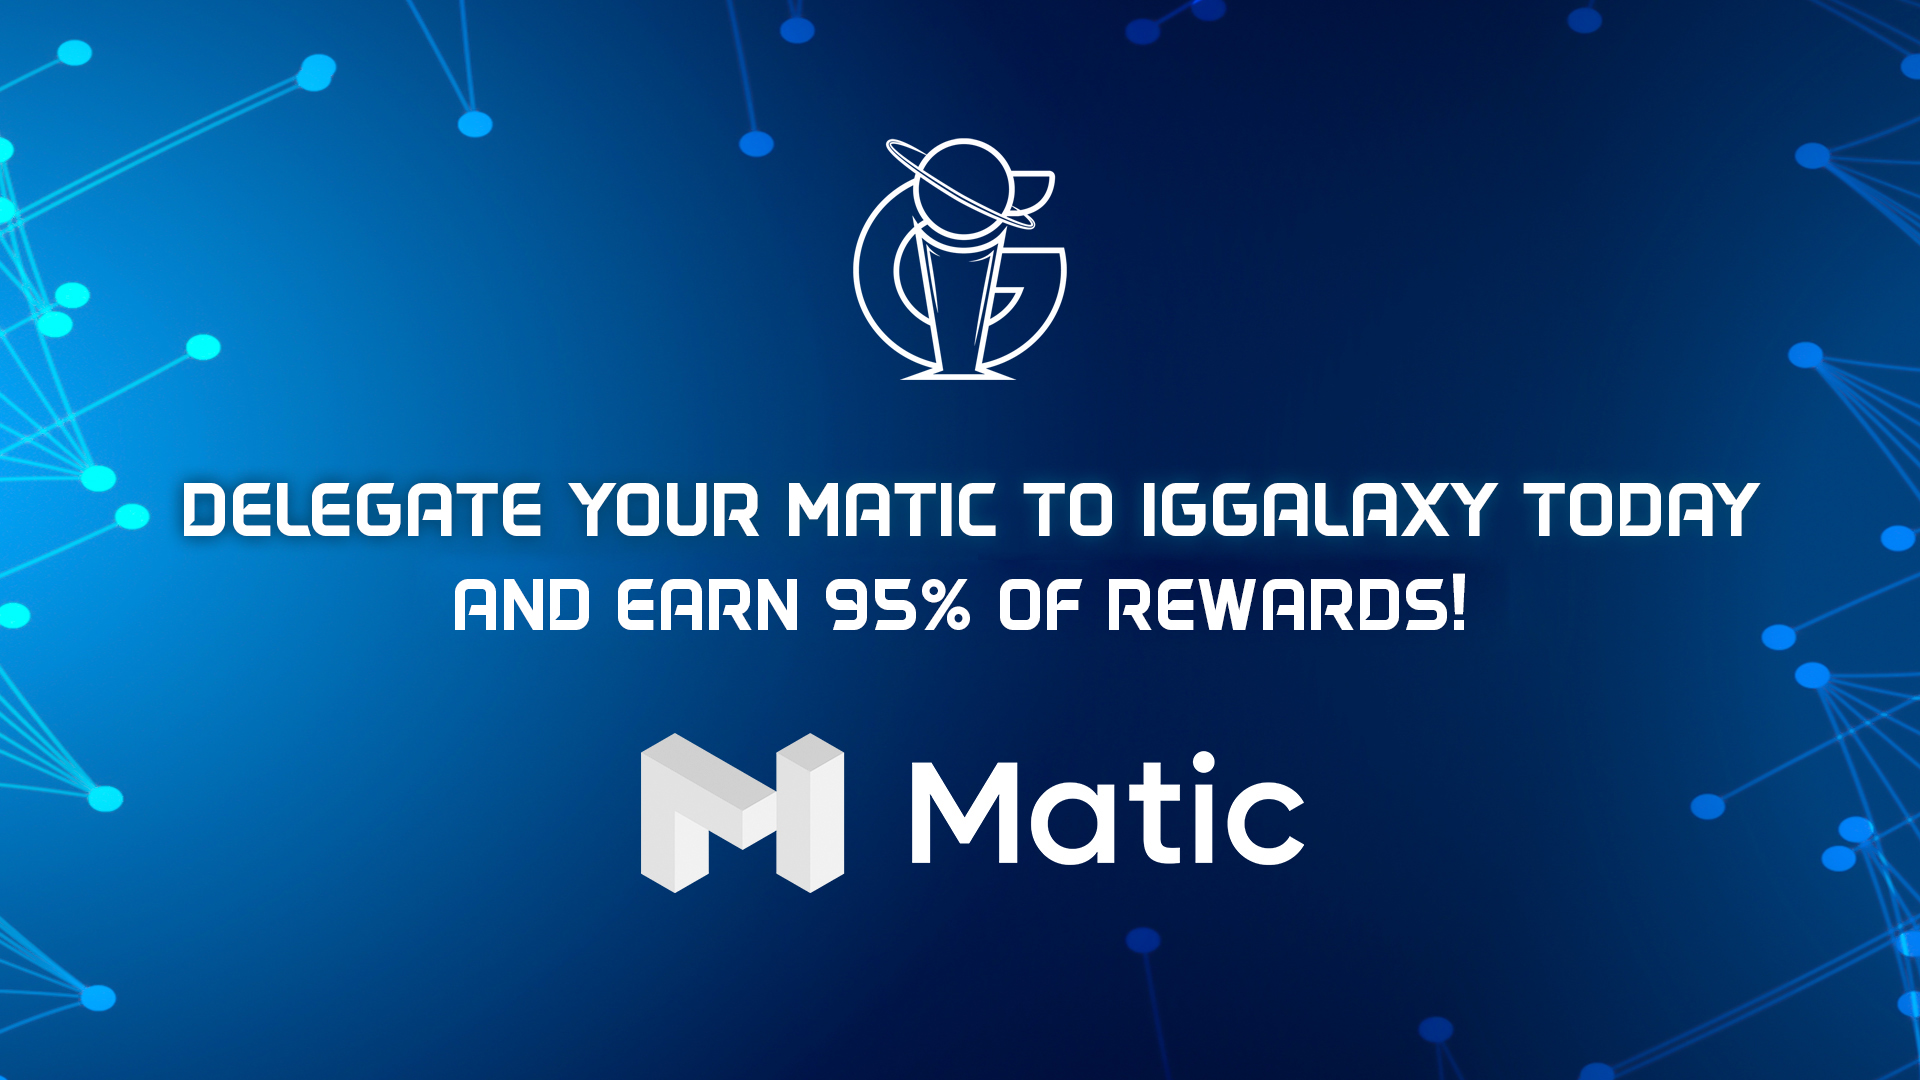 Delegate your MATIC tokens to IGGalaxy for 95% rewards!